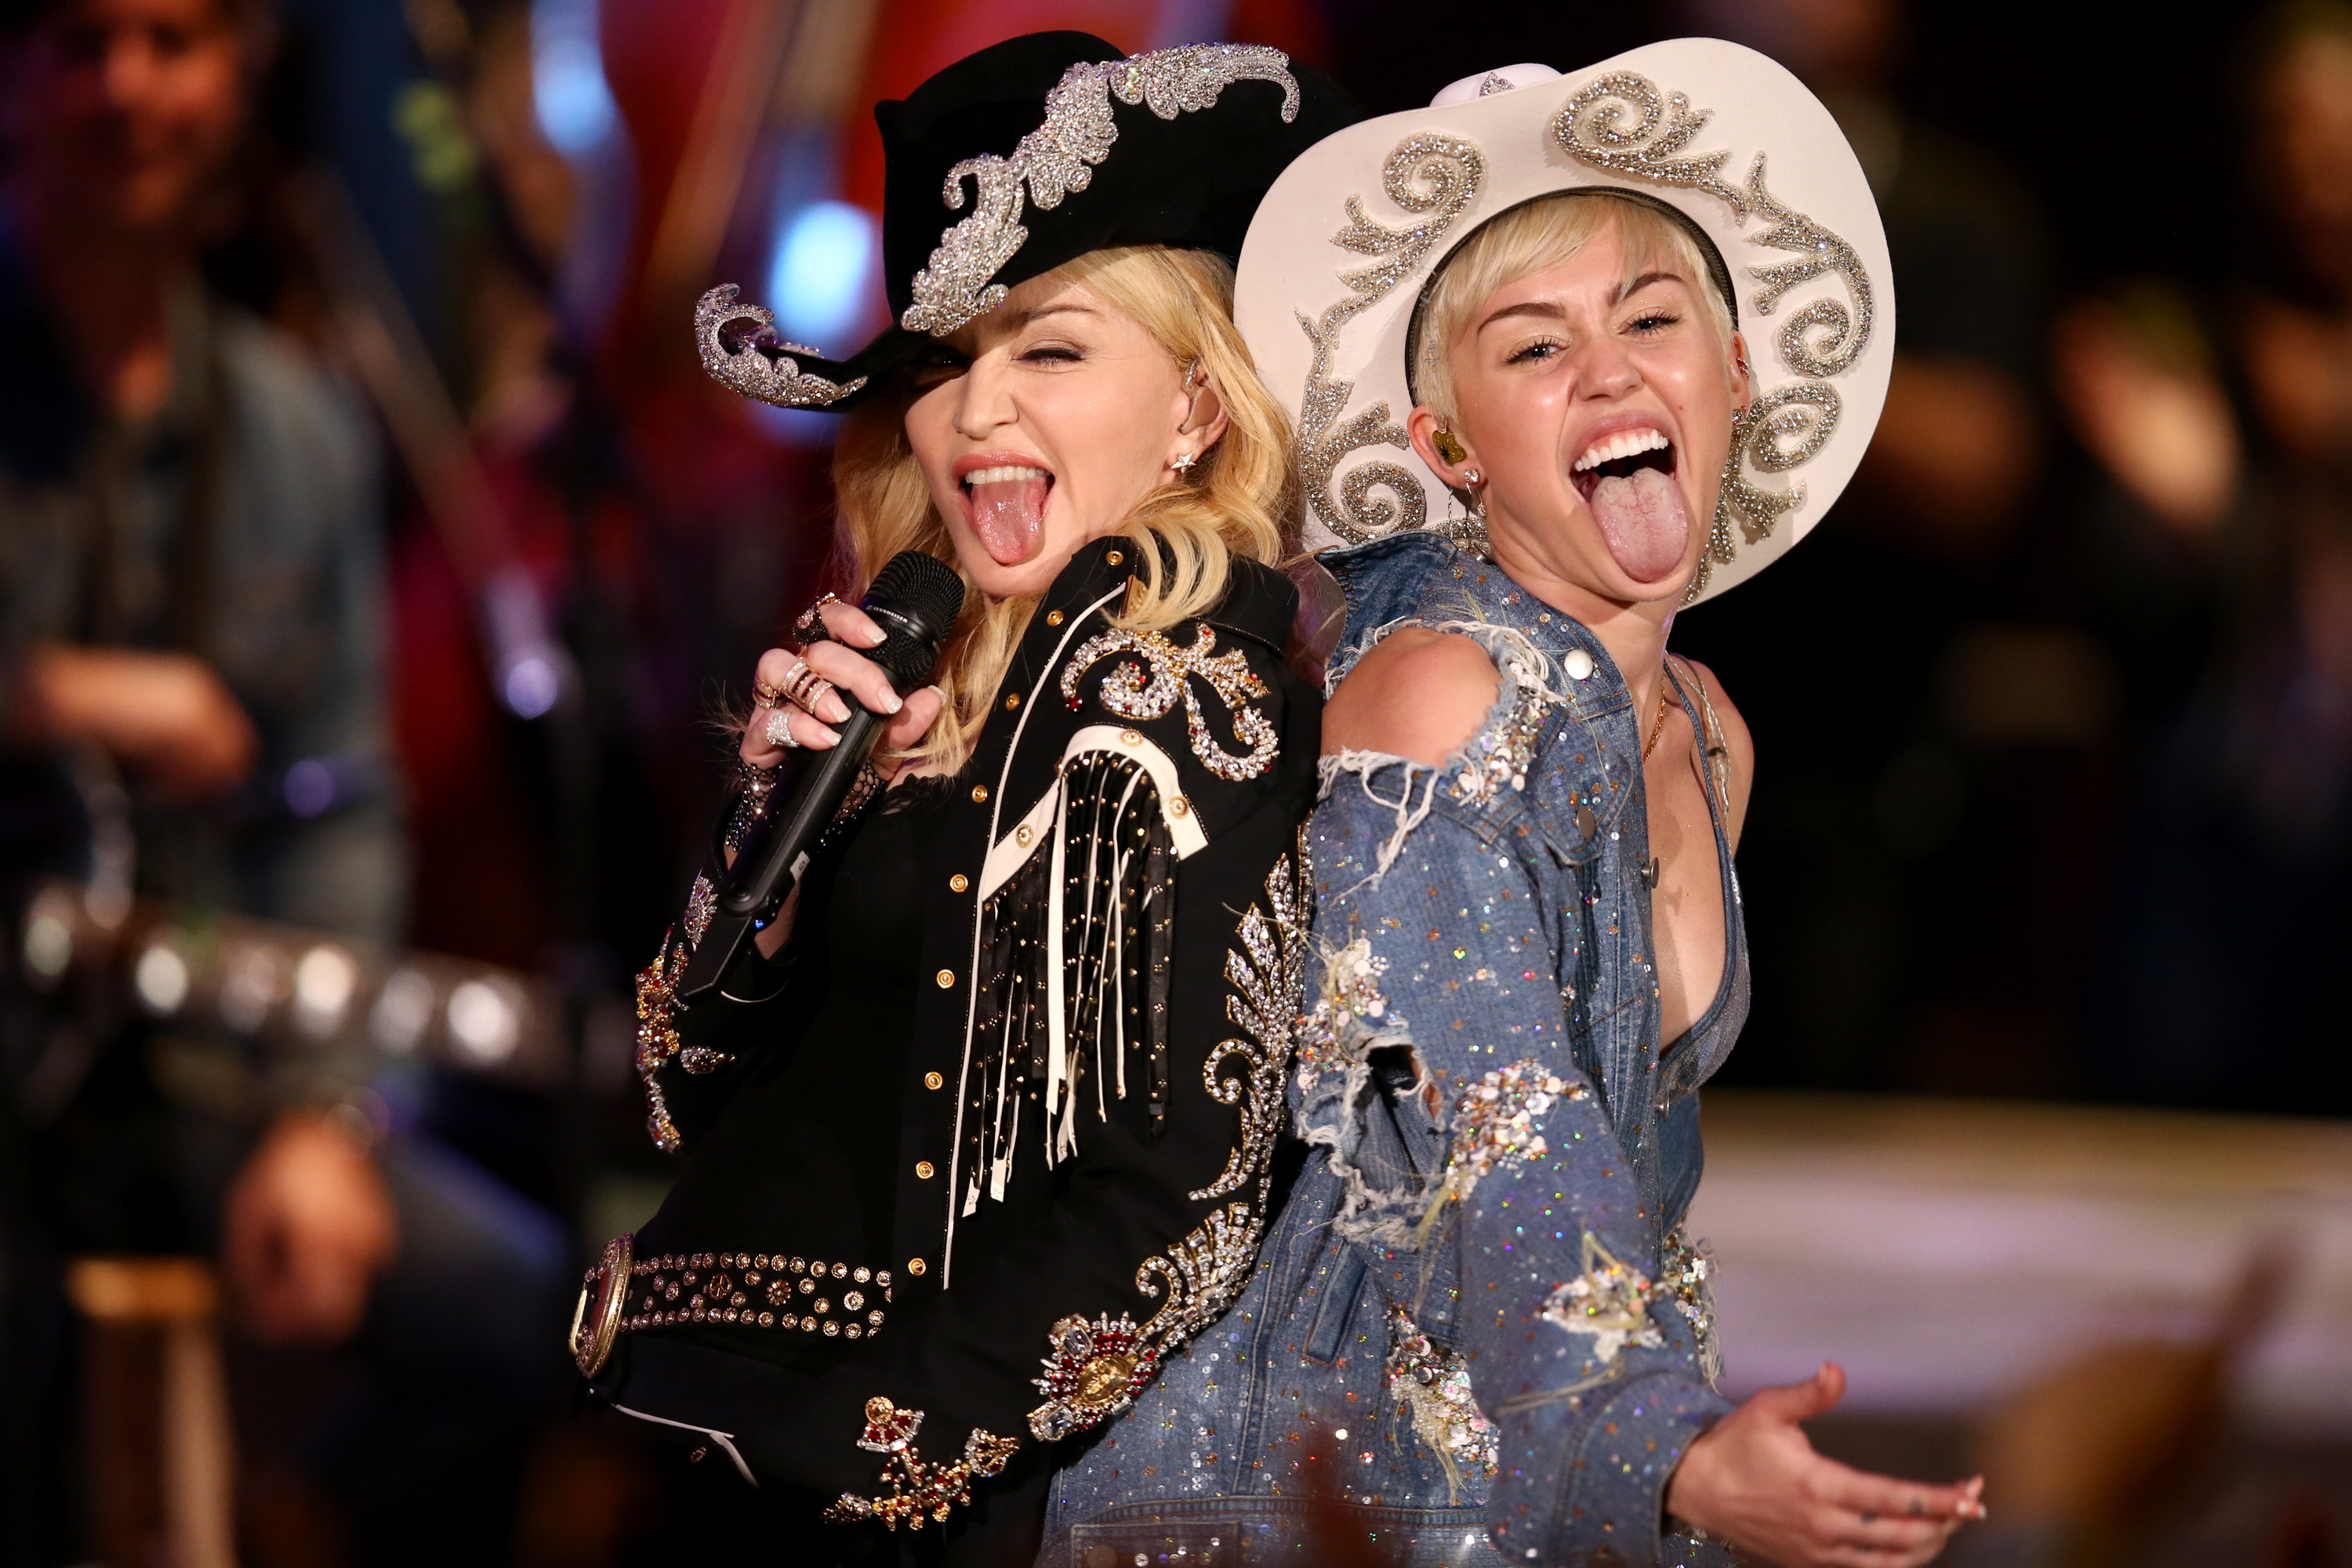 Miley Cyrus and Madonna team up for Cyrus' 'Unplugged' special.